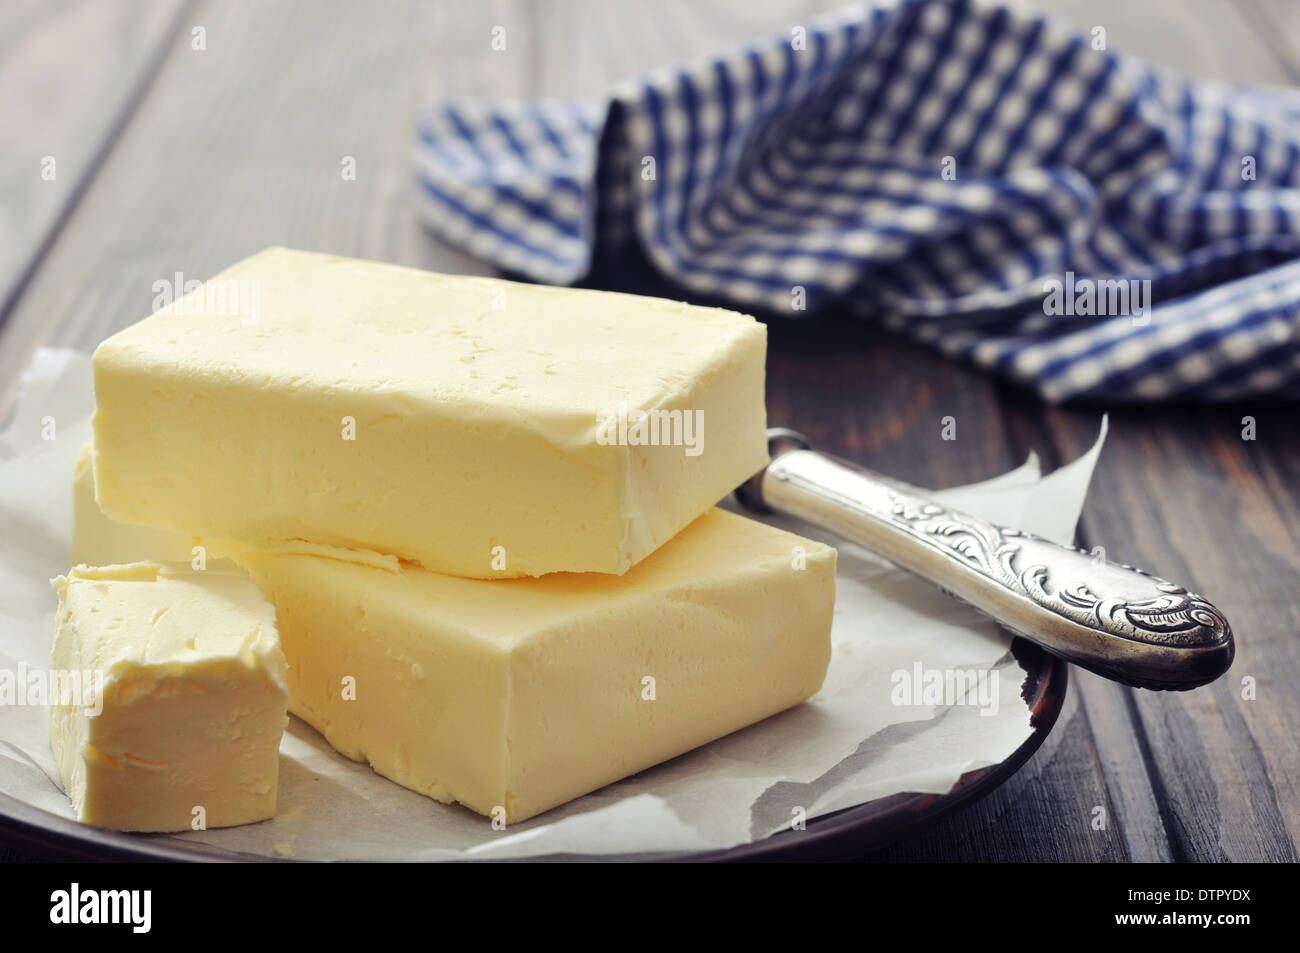 Fresh butter on wooden cutting board with knife closeup - Stock Image